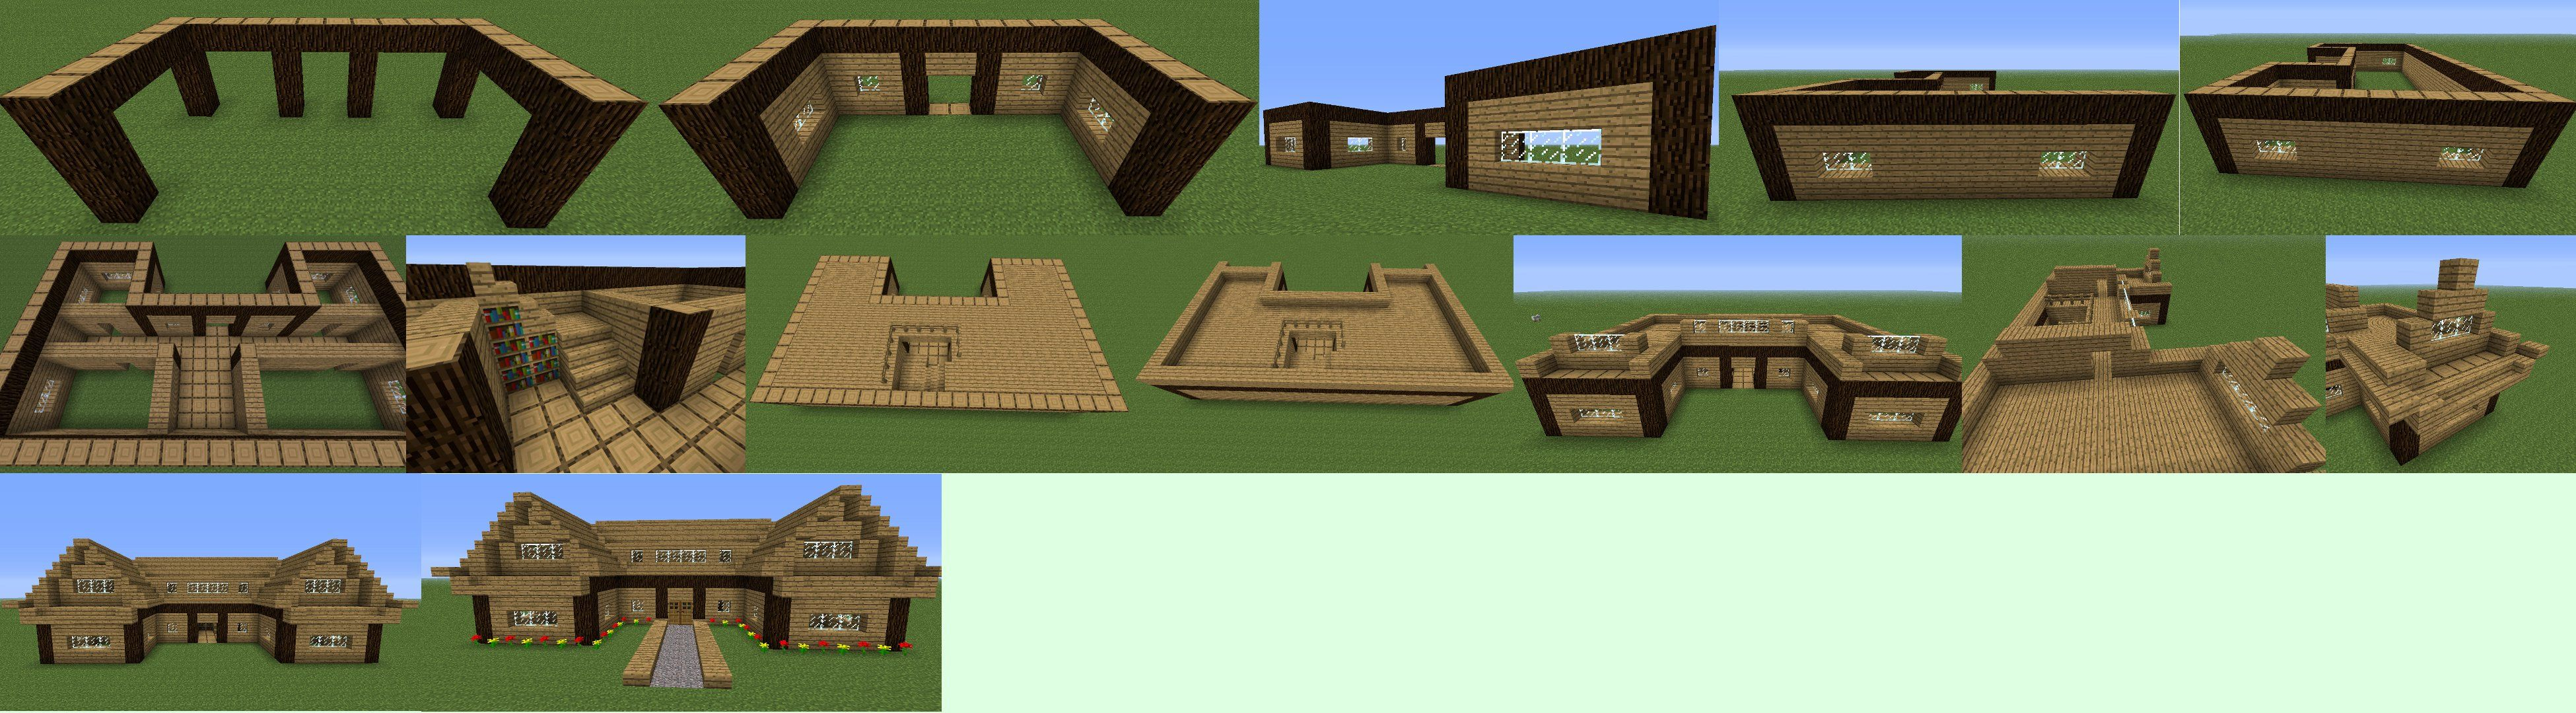 Minecraft Houses Step By Step Google Search Minecraft